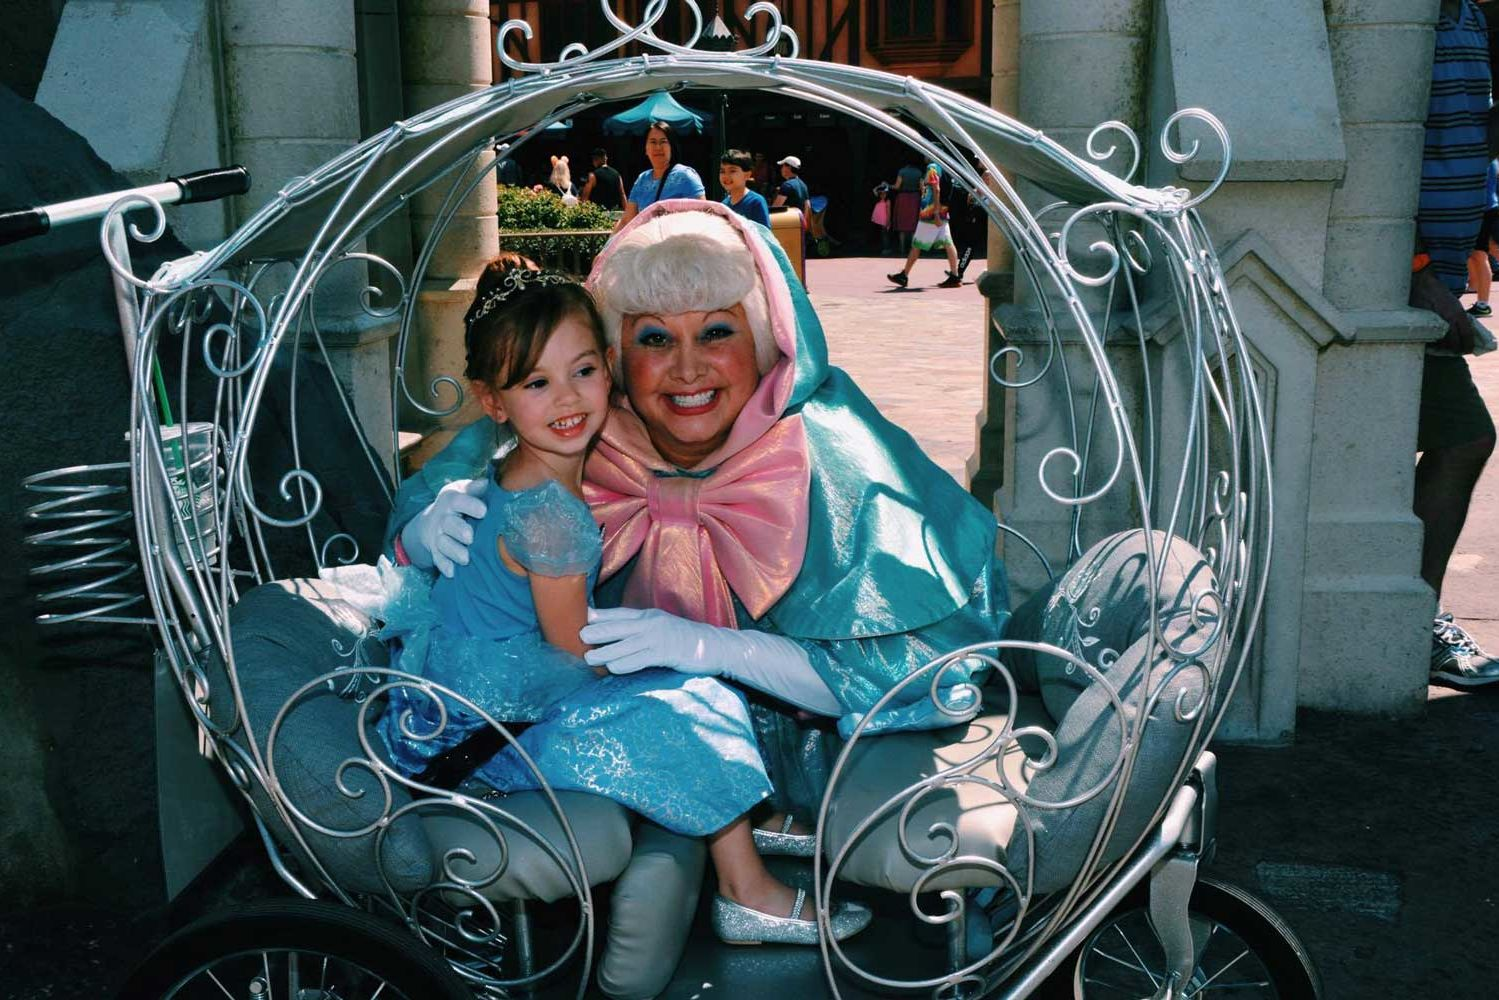 You Can Now Rent Tiny Cinderella Carriage Strollers at Walt Disney World